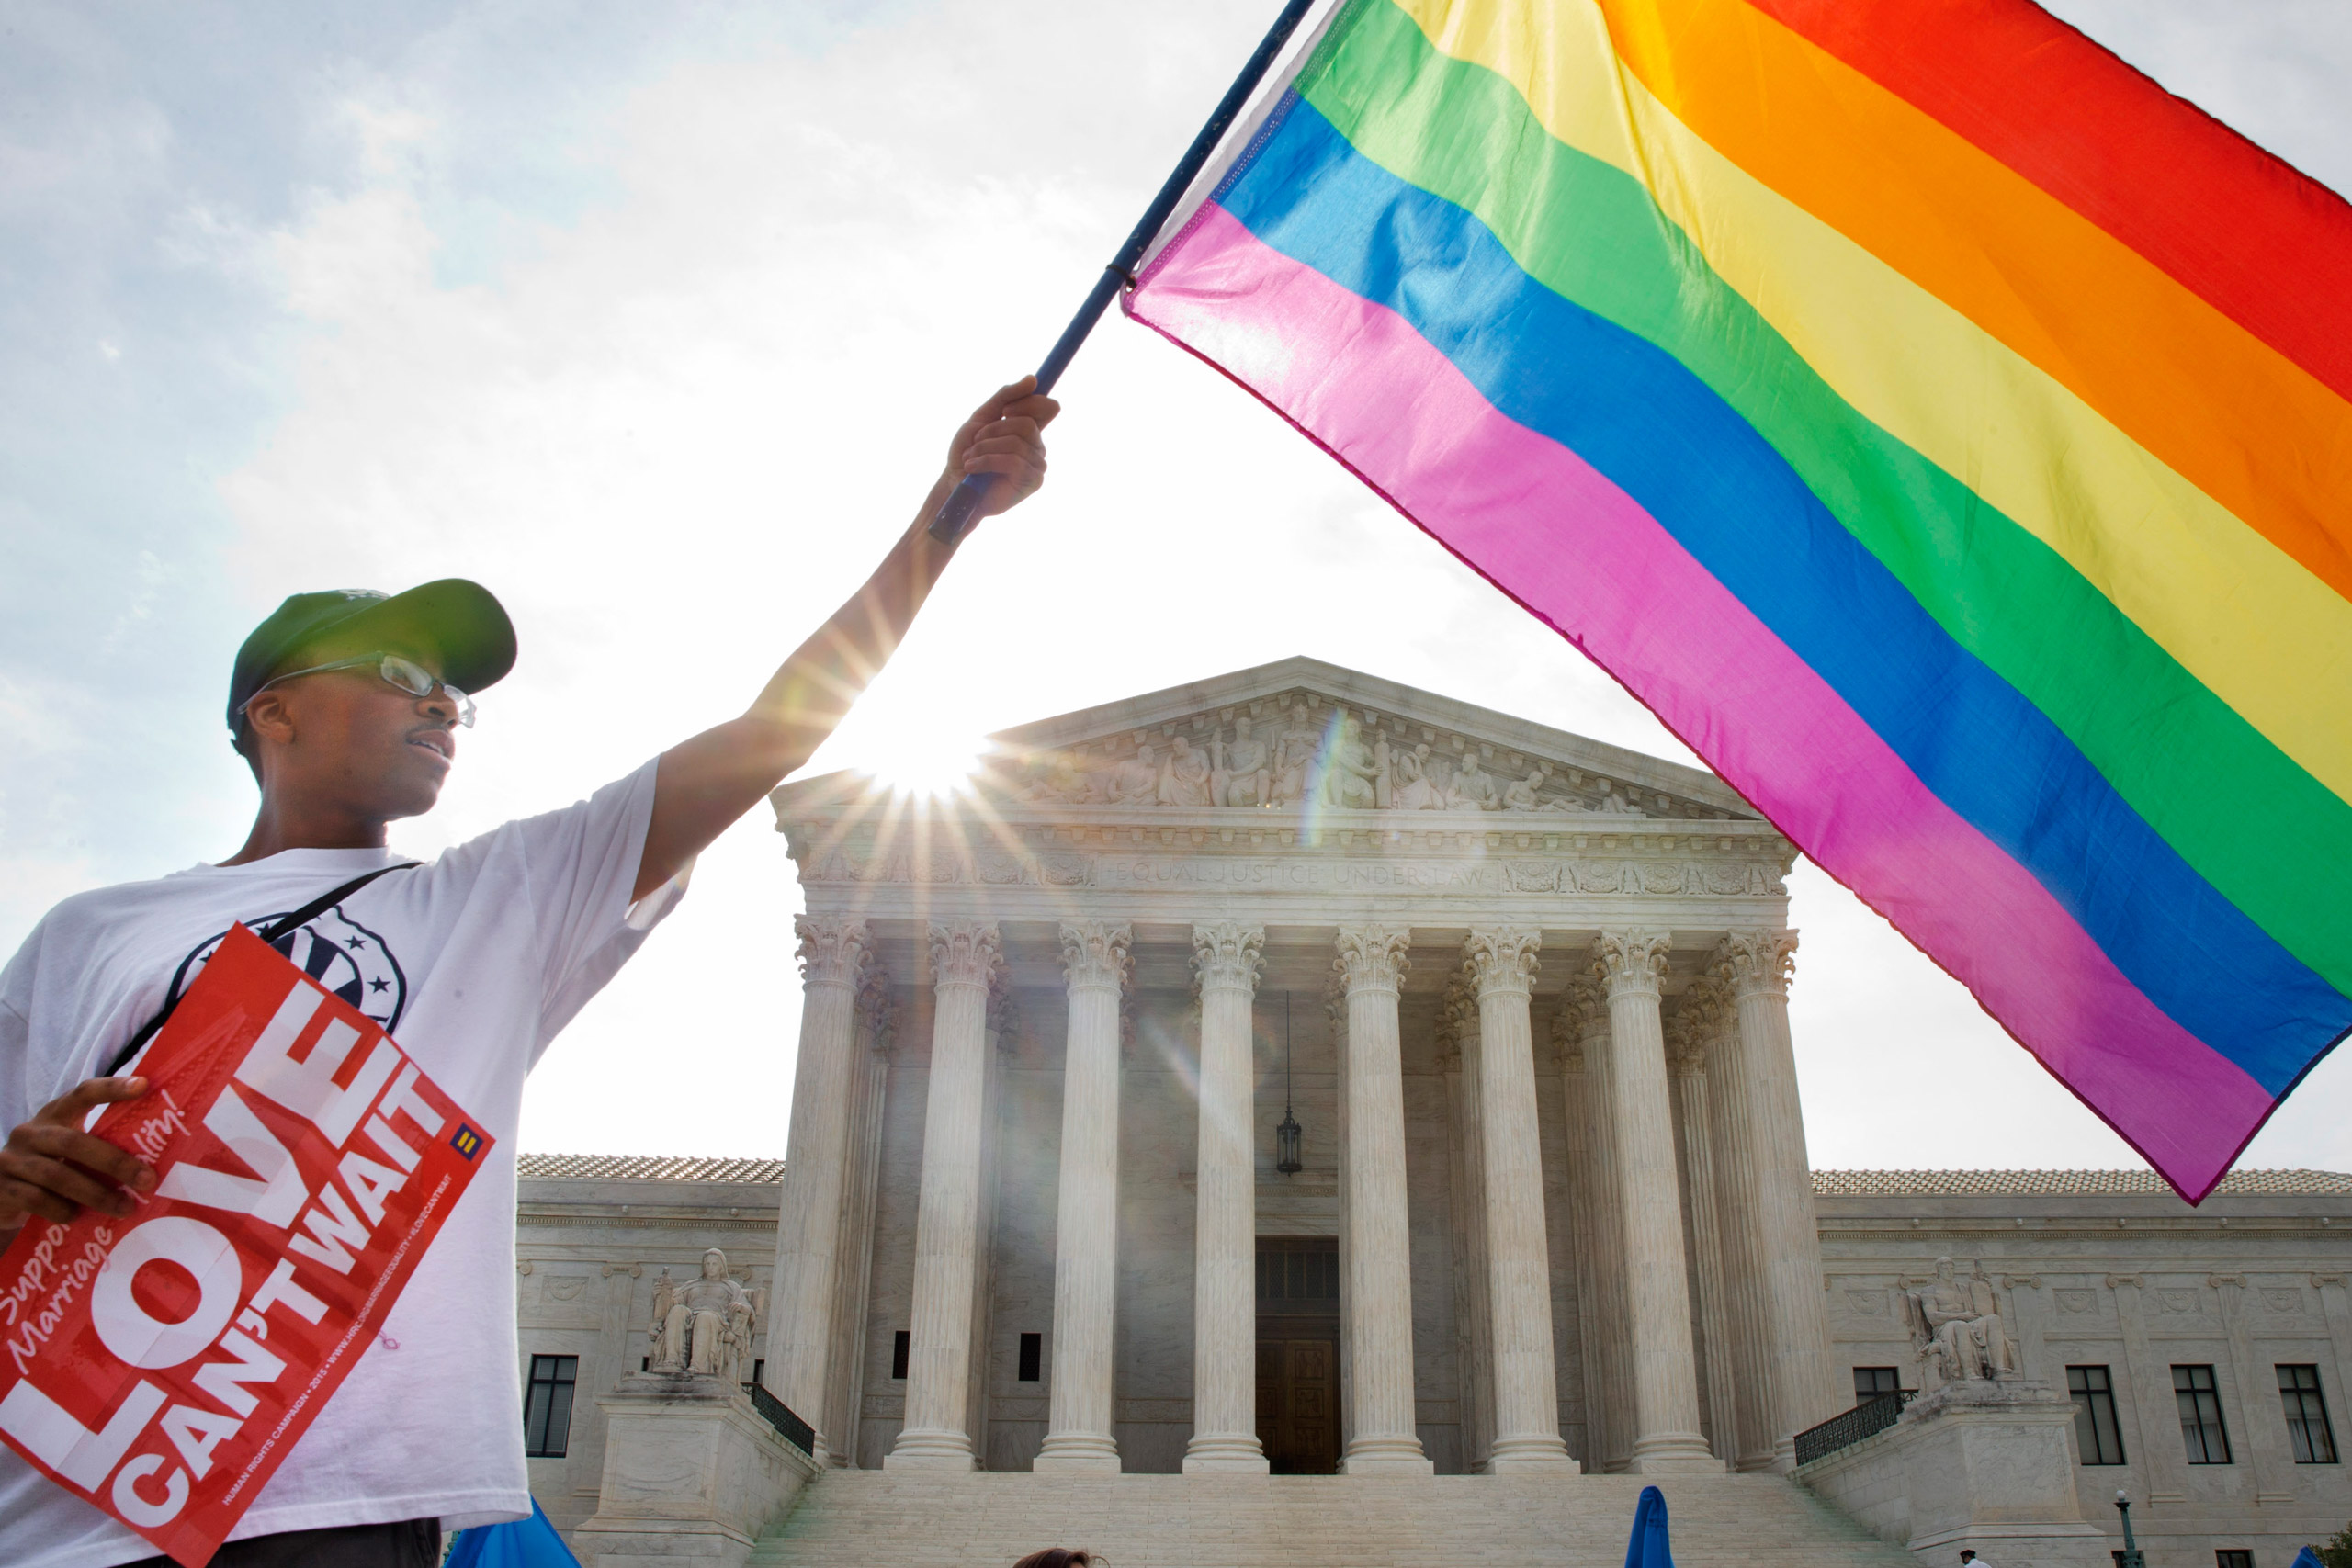 Carlos McKnight waves a flag in support of gay marriage outside of the Supreme Court in Washington on June 26, 2015.